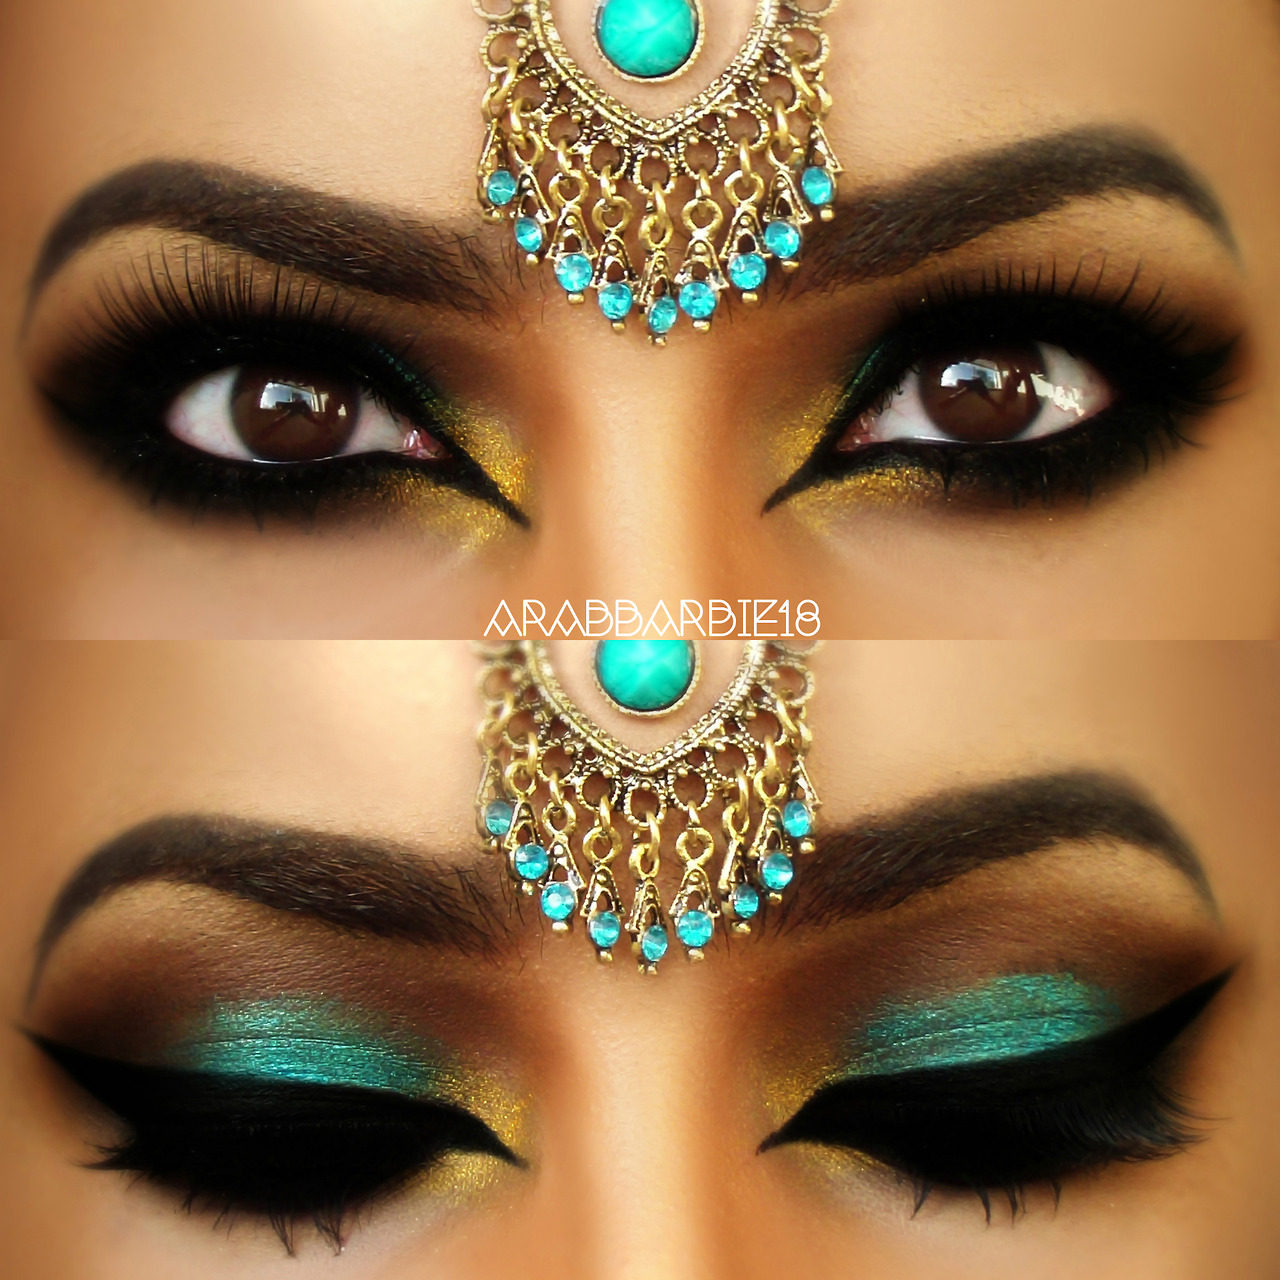 40 Images About Make Up On We Heart It See More About Makeup Make